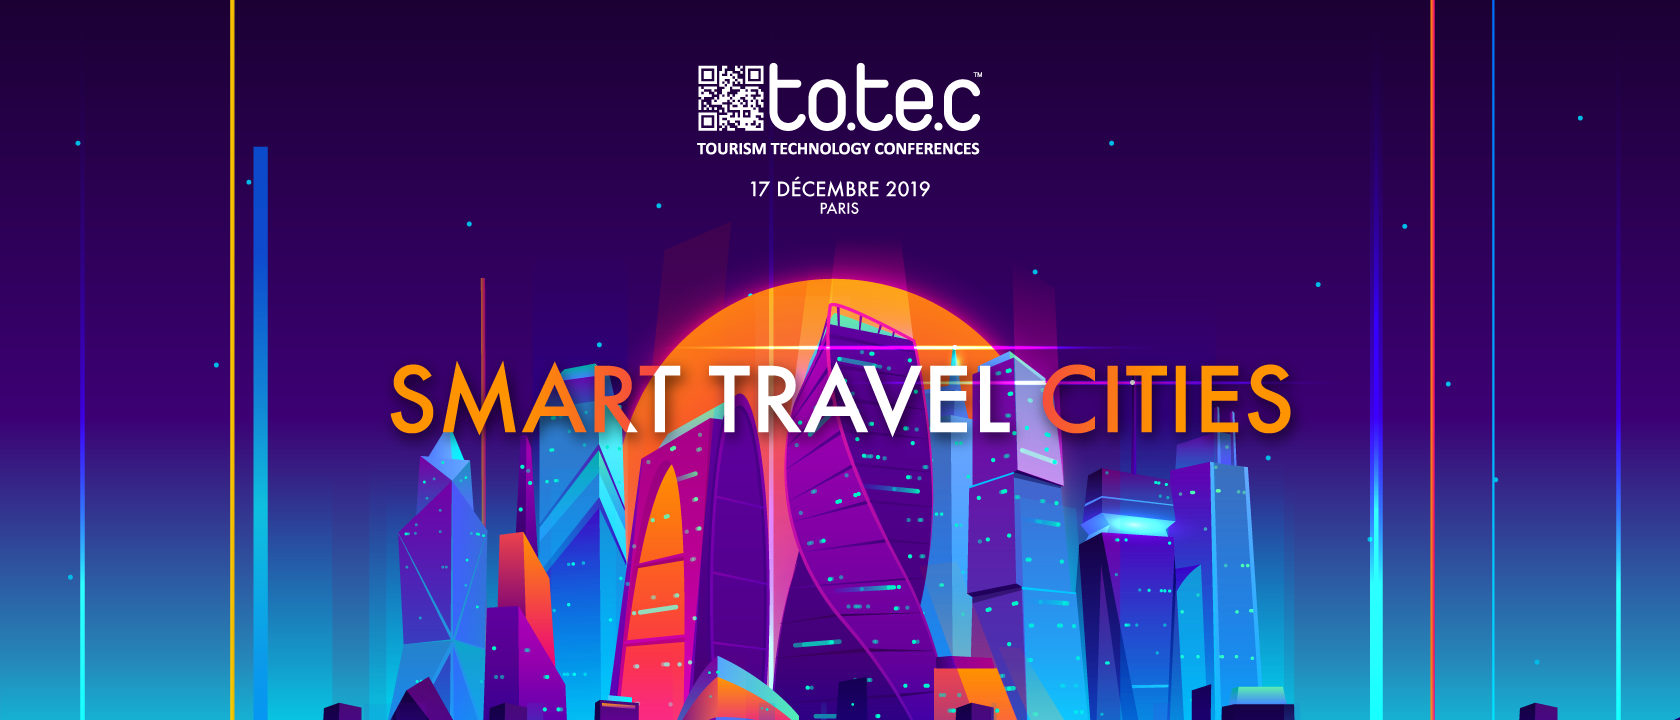 totec 2019 - smart travel cities